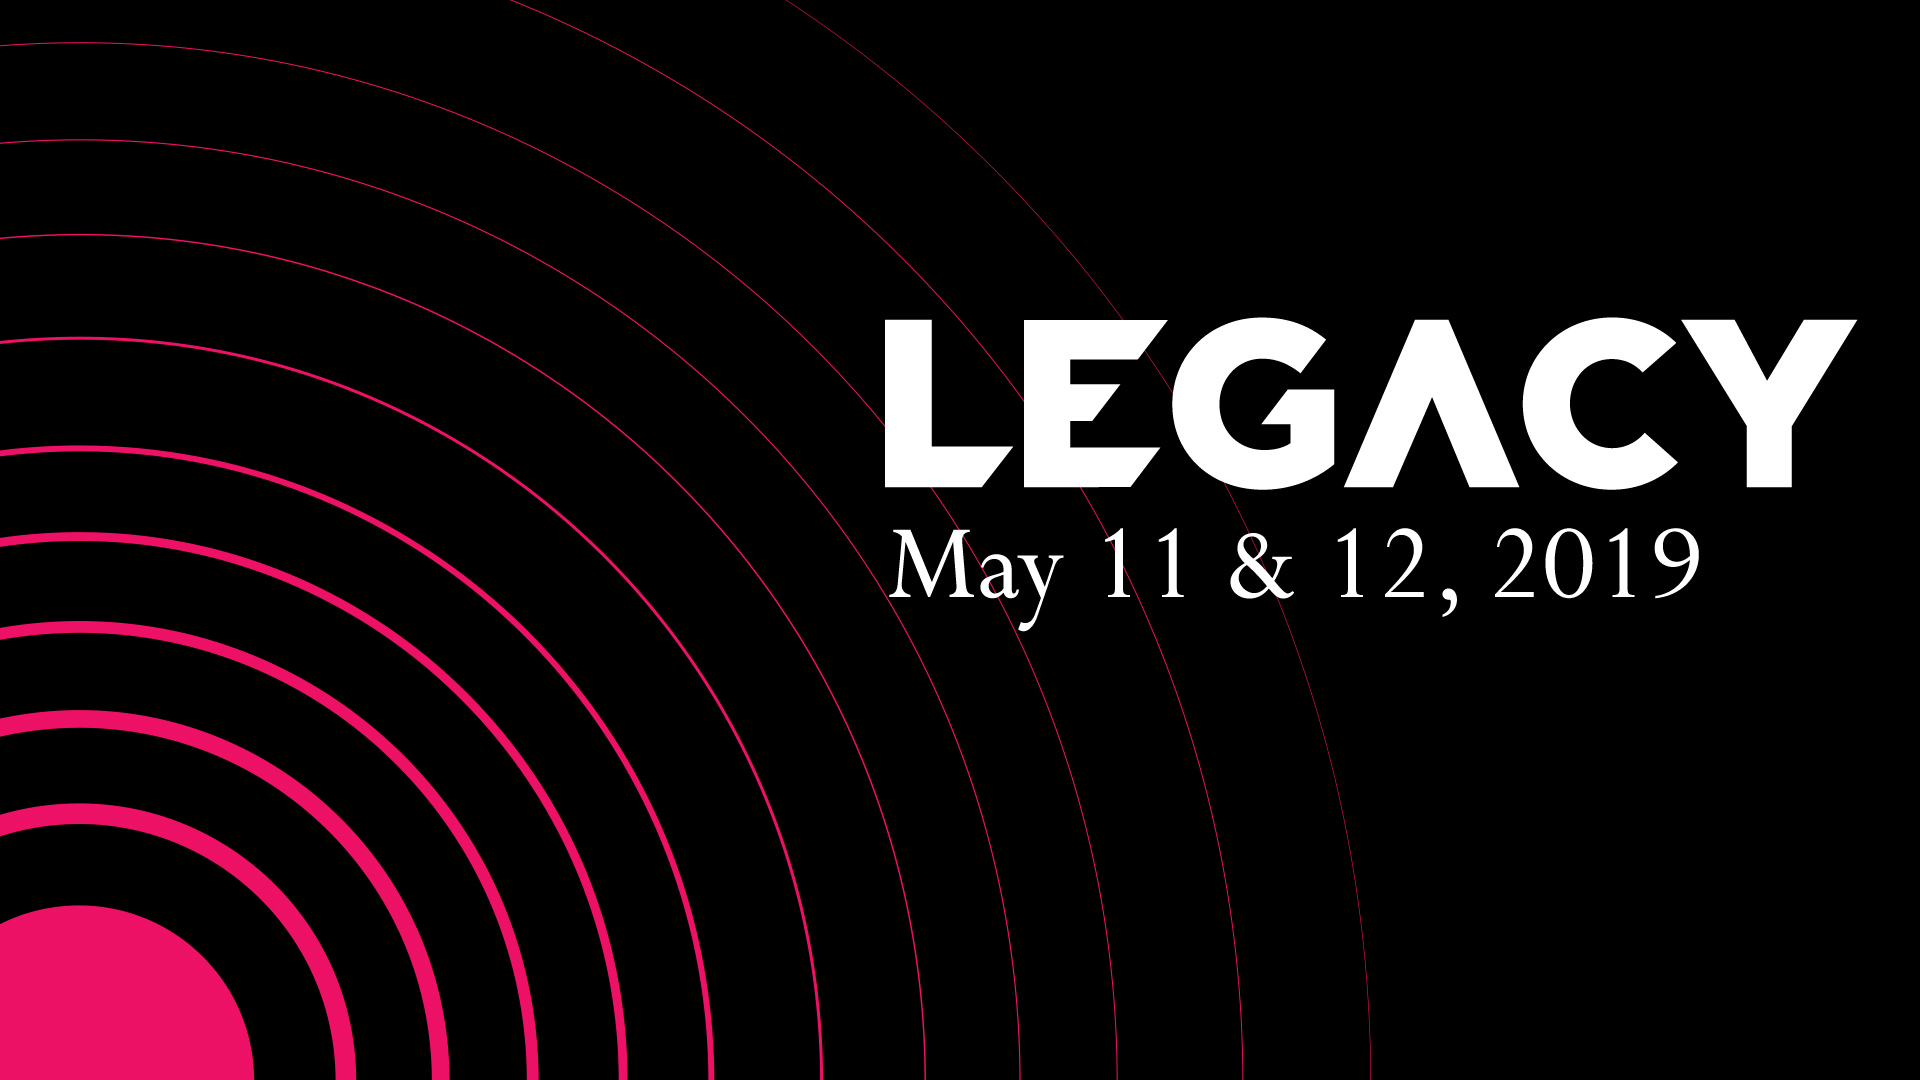 Spring Concert Series: Legacy